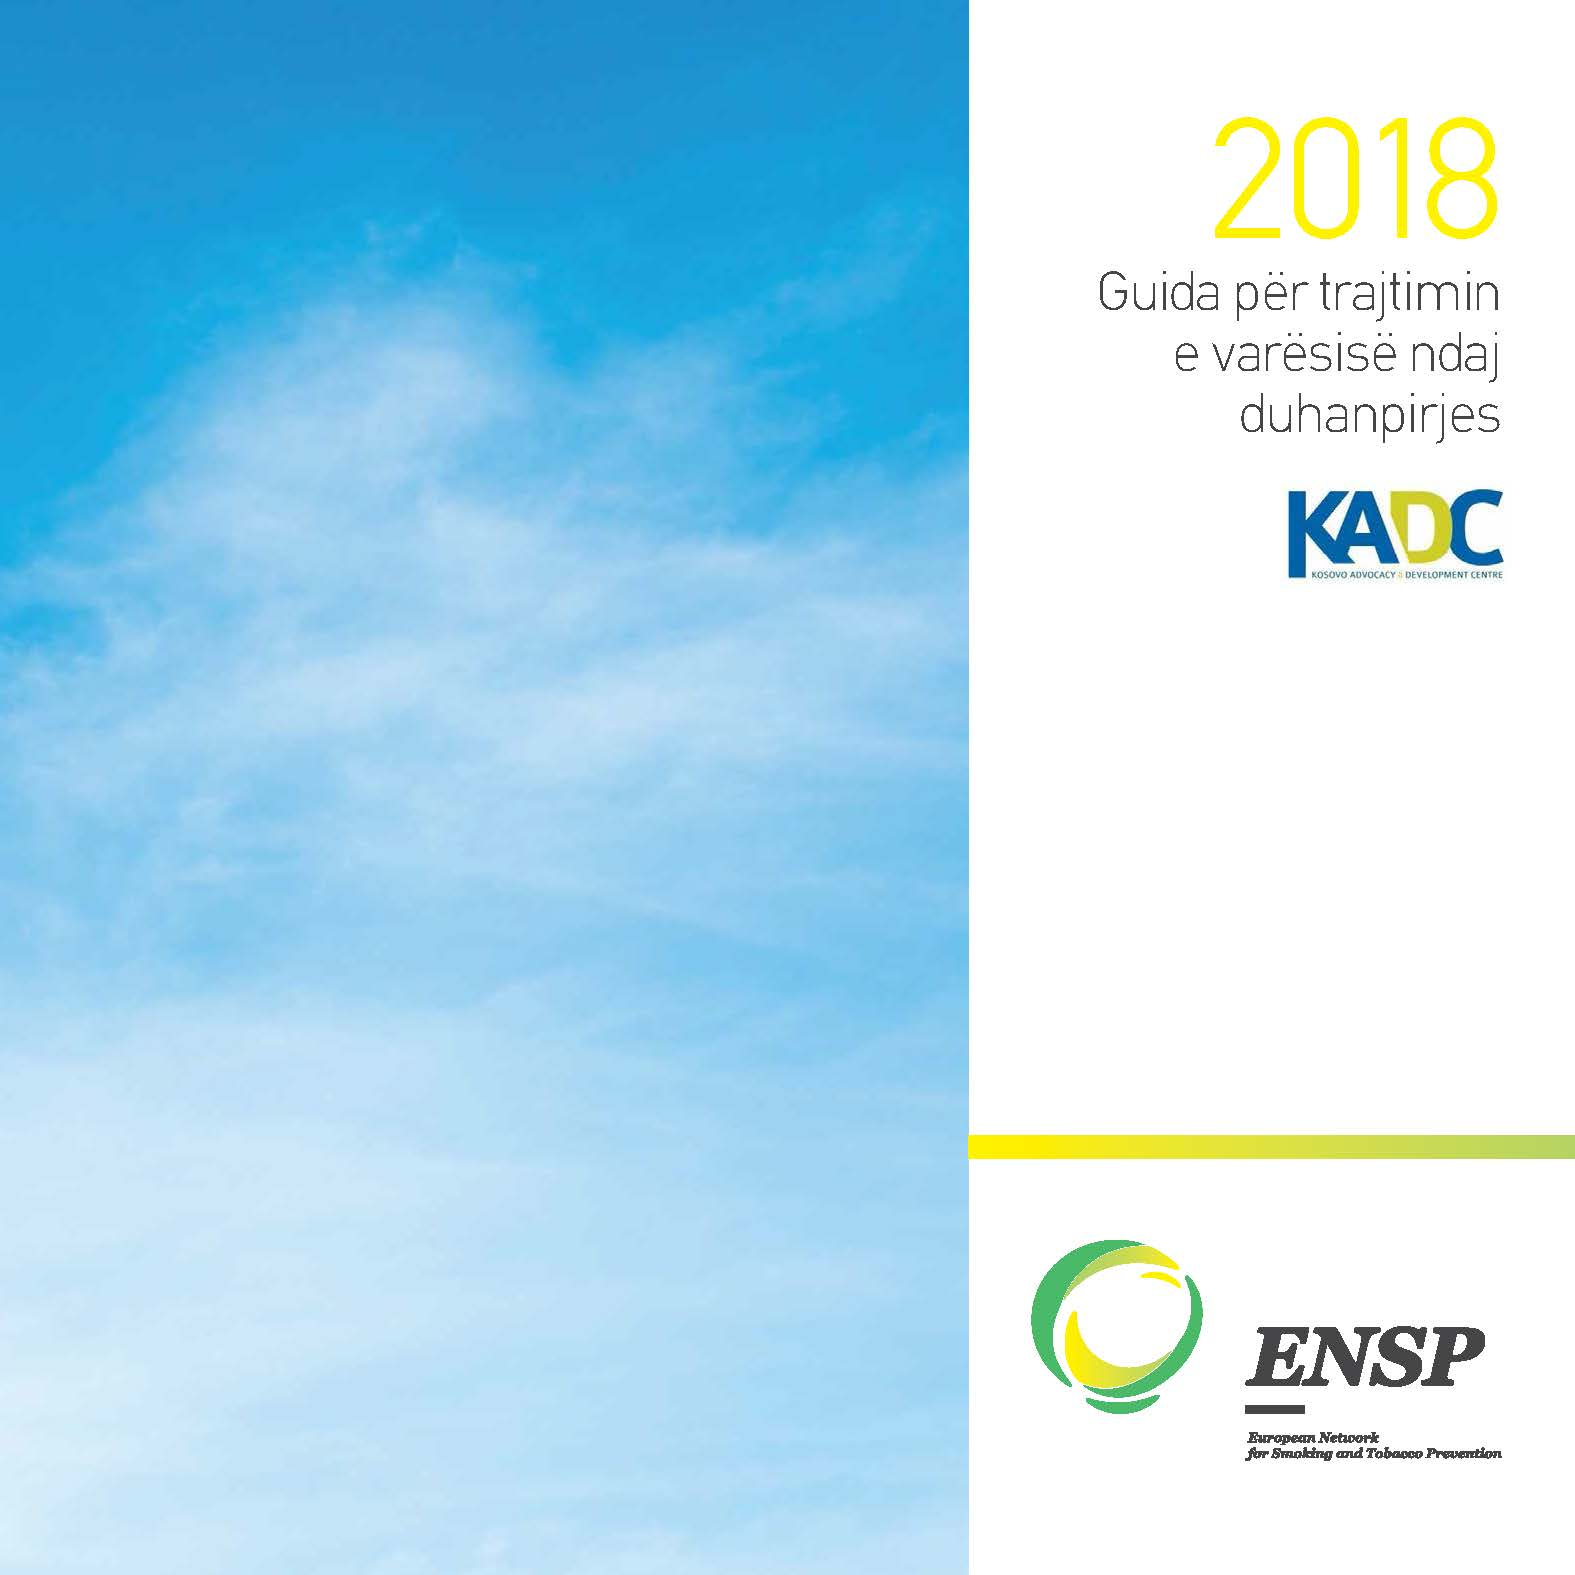 guidelines_2018_kosovo_Page_001.jpg